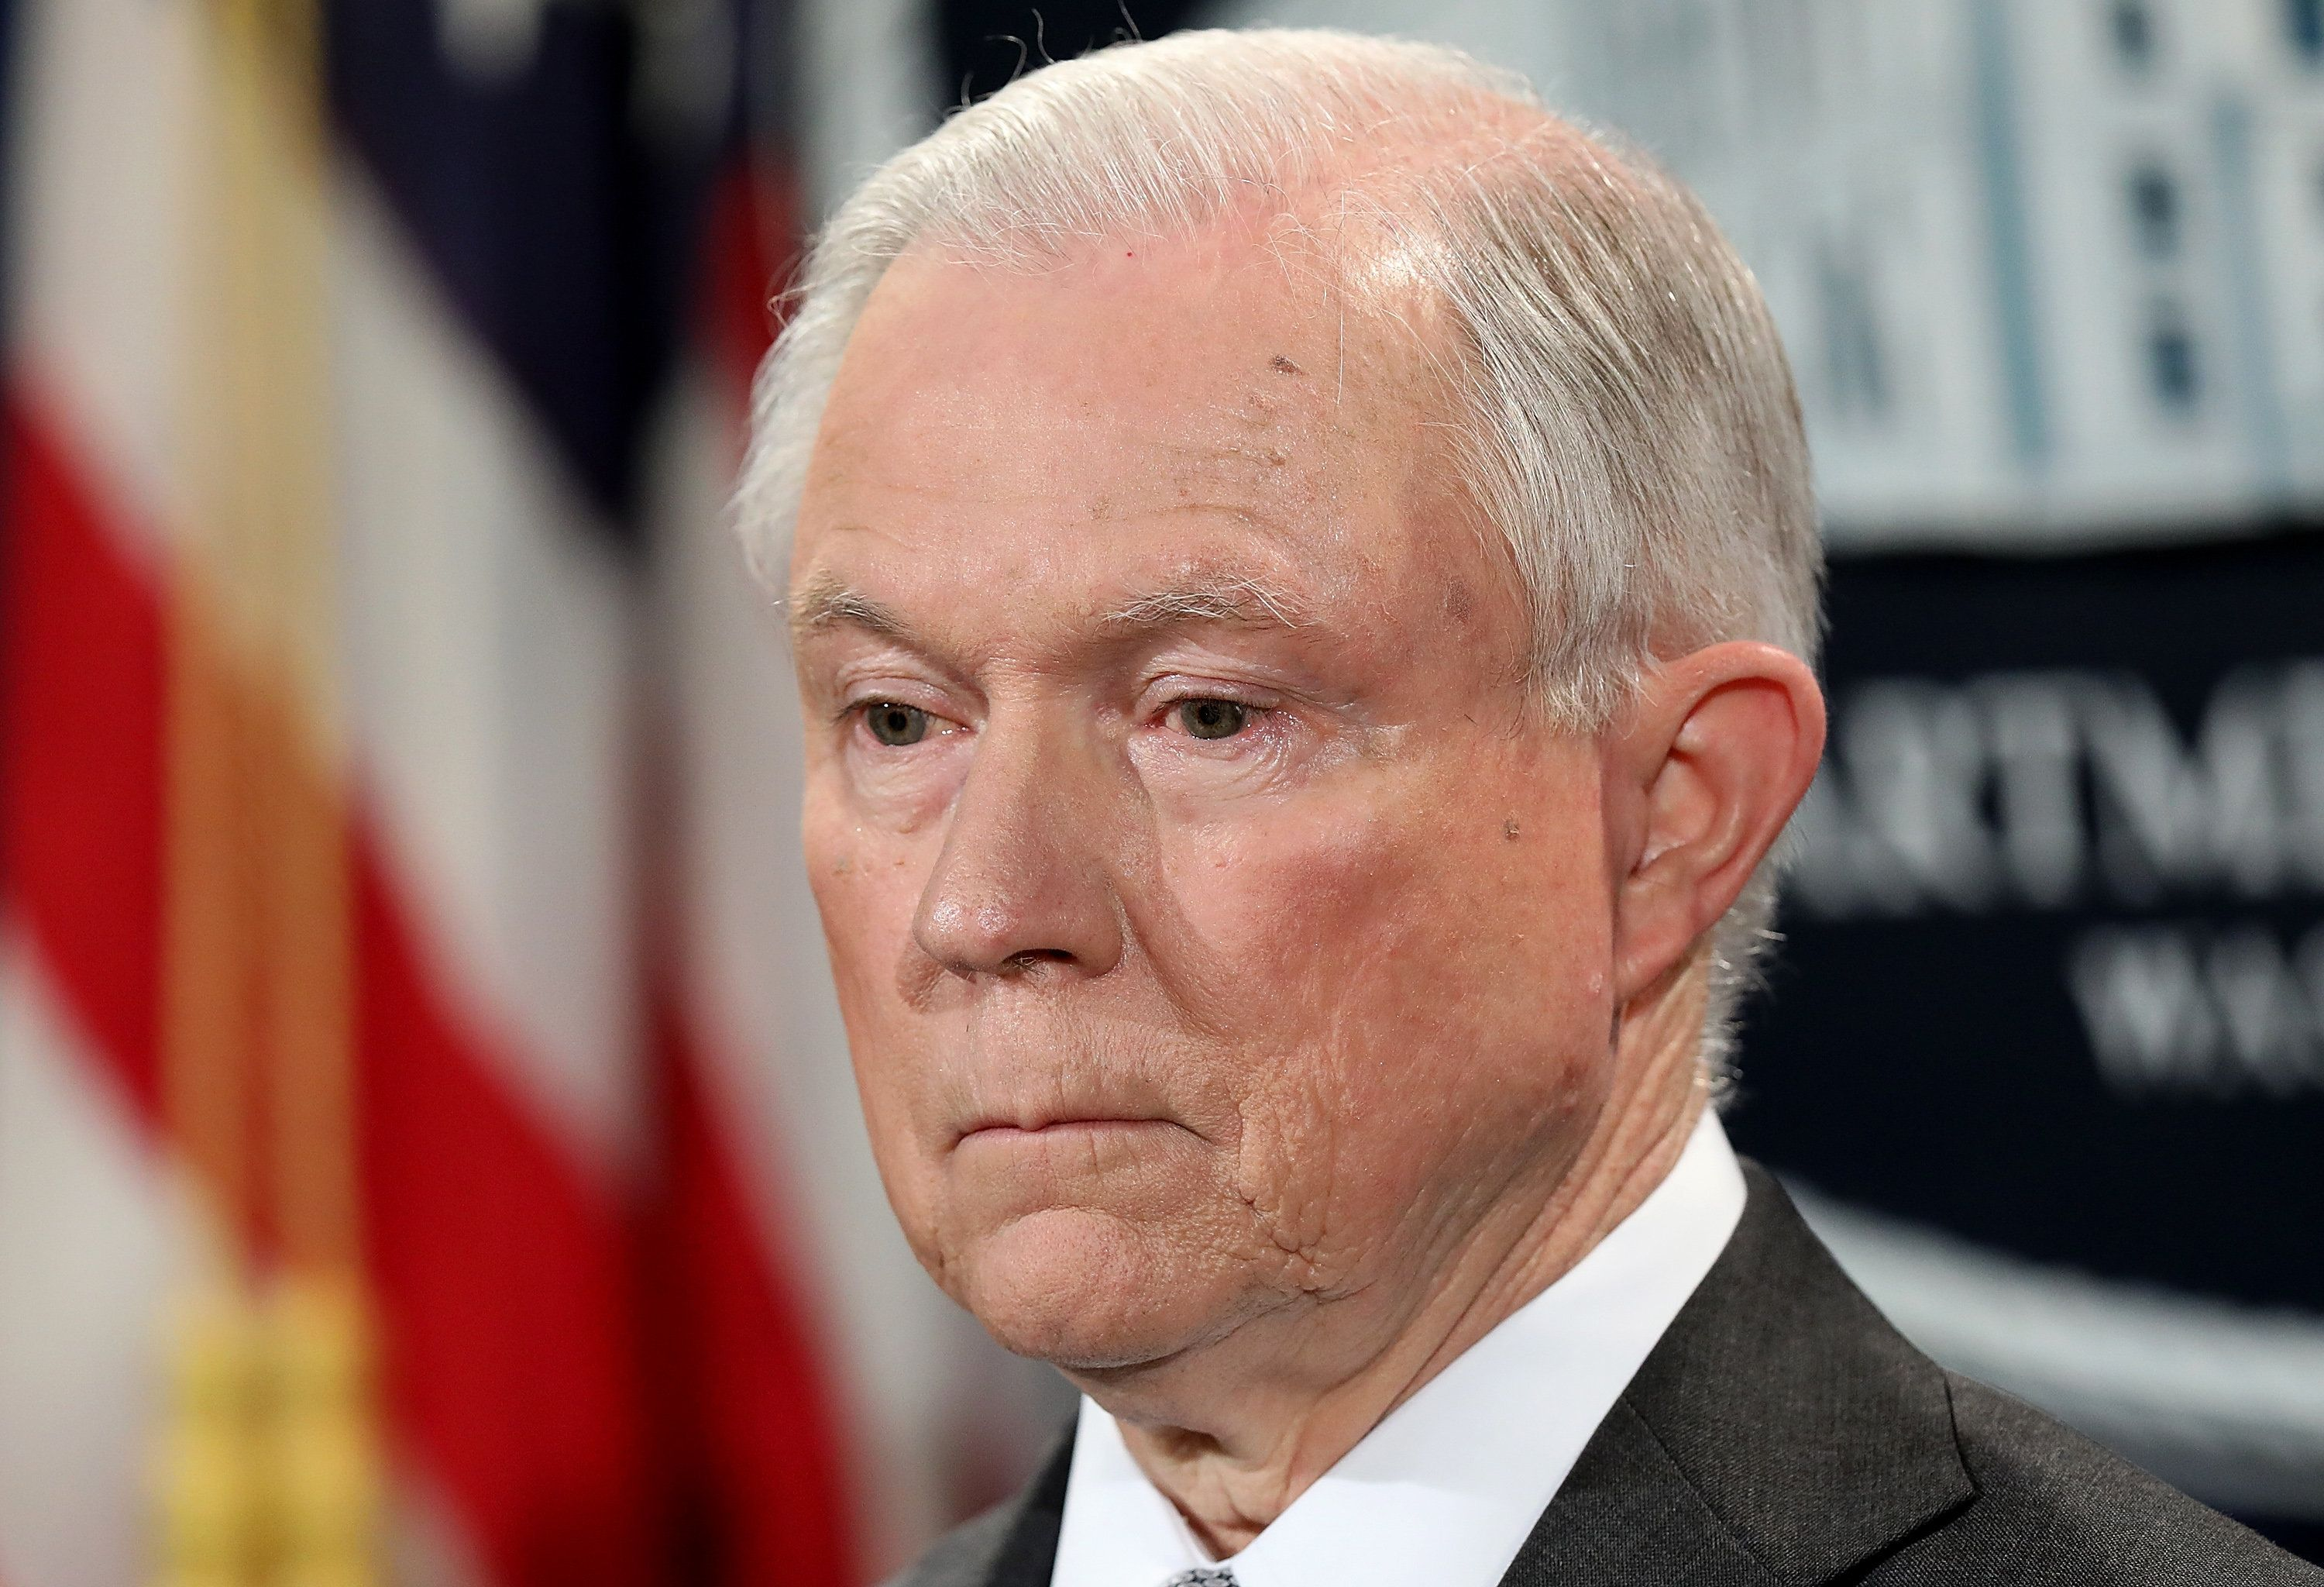 Jeff Sessions Resigns As Attorney General At President Trump's Request